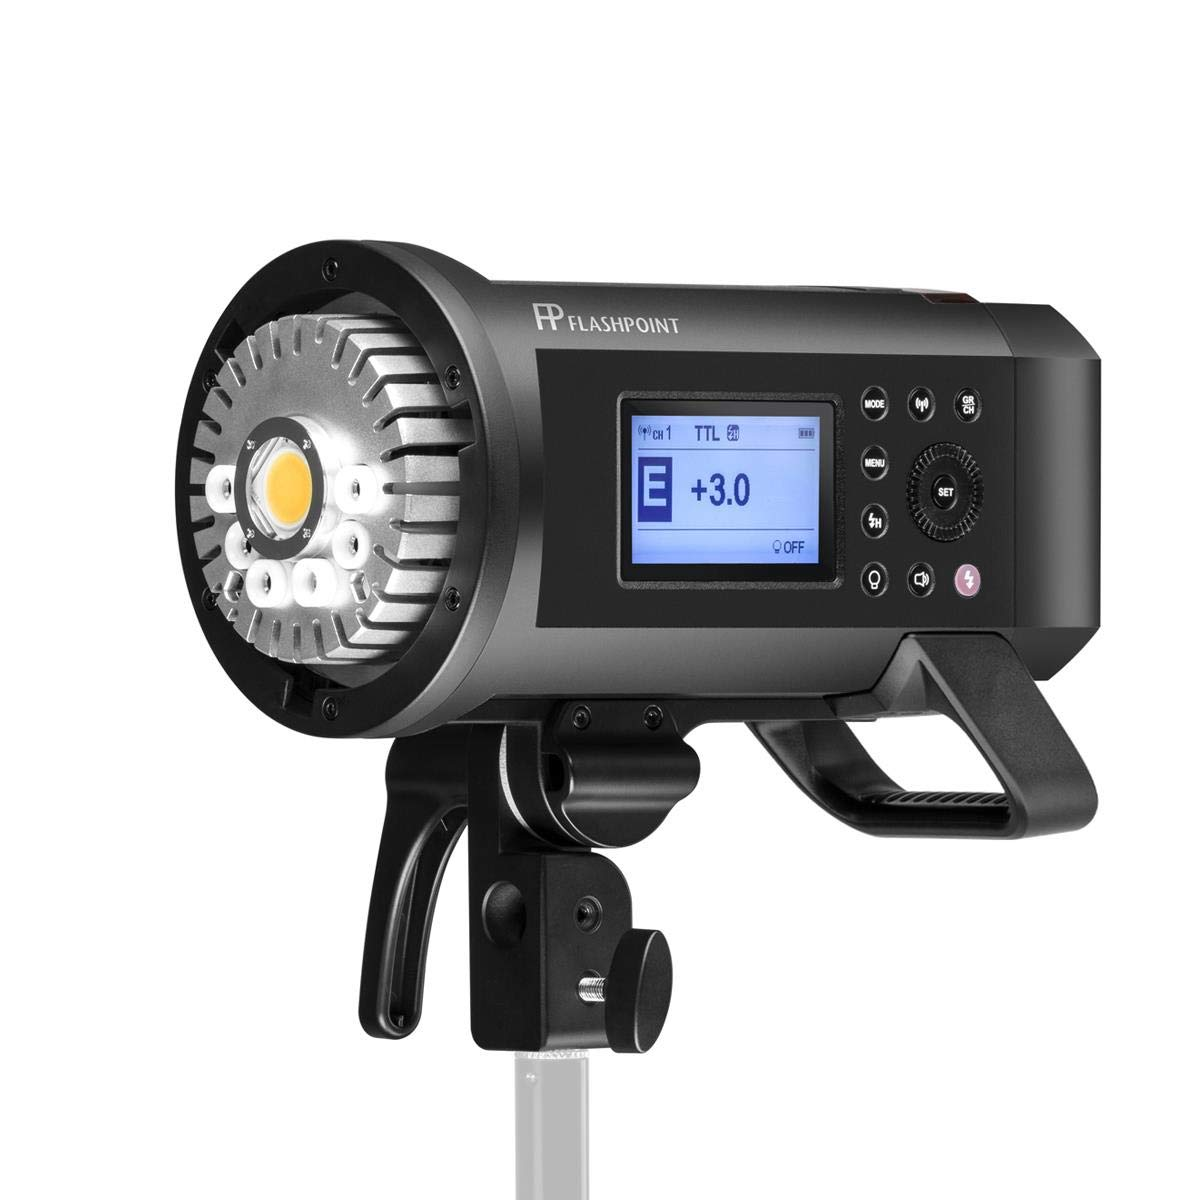 Flashpoint XPLOR 600PRO R2 HSS Battery-Powered Monolight Kit with Glow ParaPop and C-Stand. by Flashpoint (Image #3)